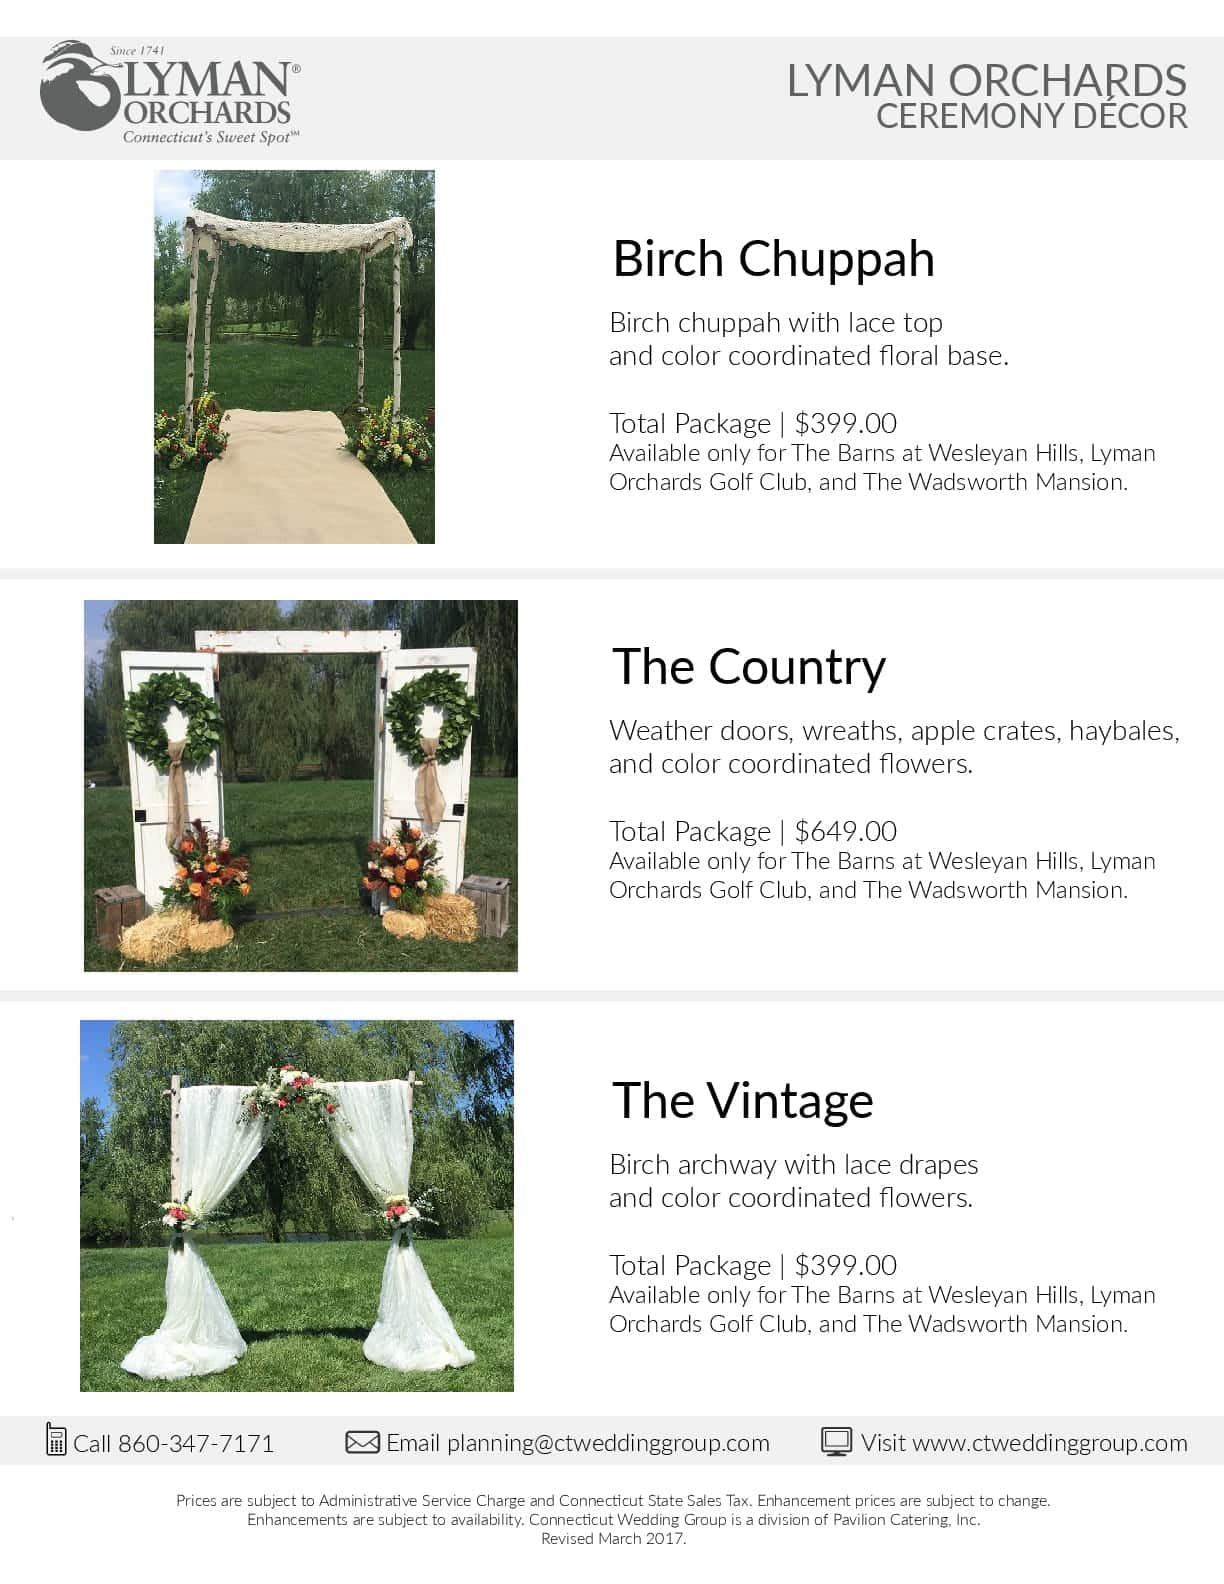 117_15317_Lyman-Orchards-Golf-Club-Ceremony-Decor-Packages_2017-002-min